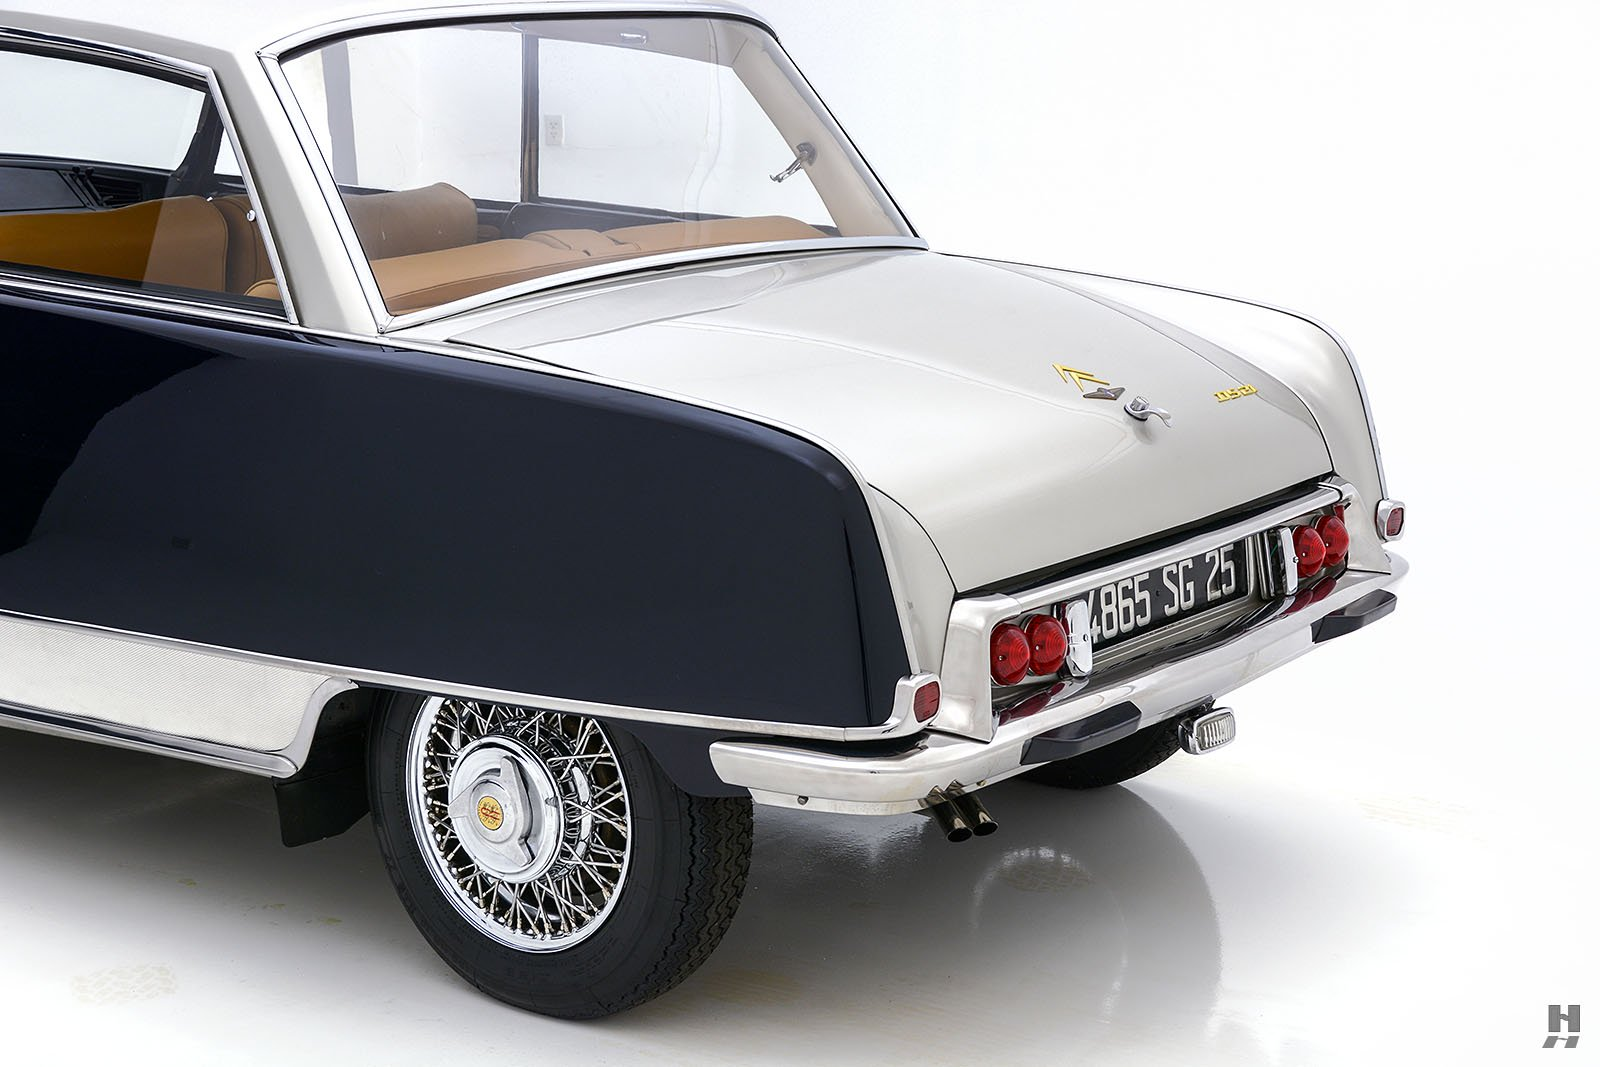 Citroen-DS21-Concorde-coupe-for-sale-27